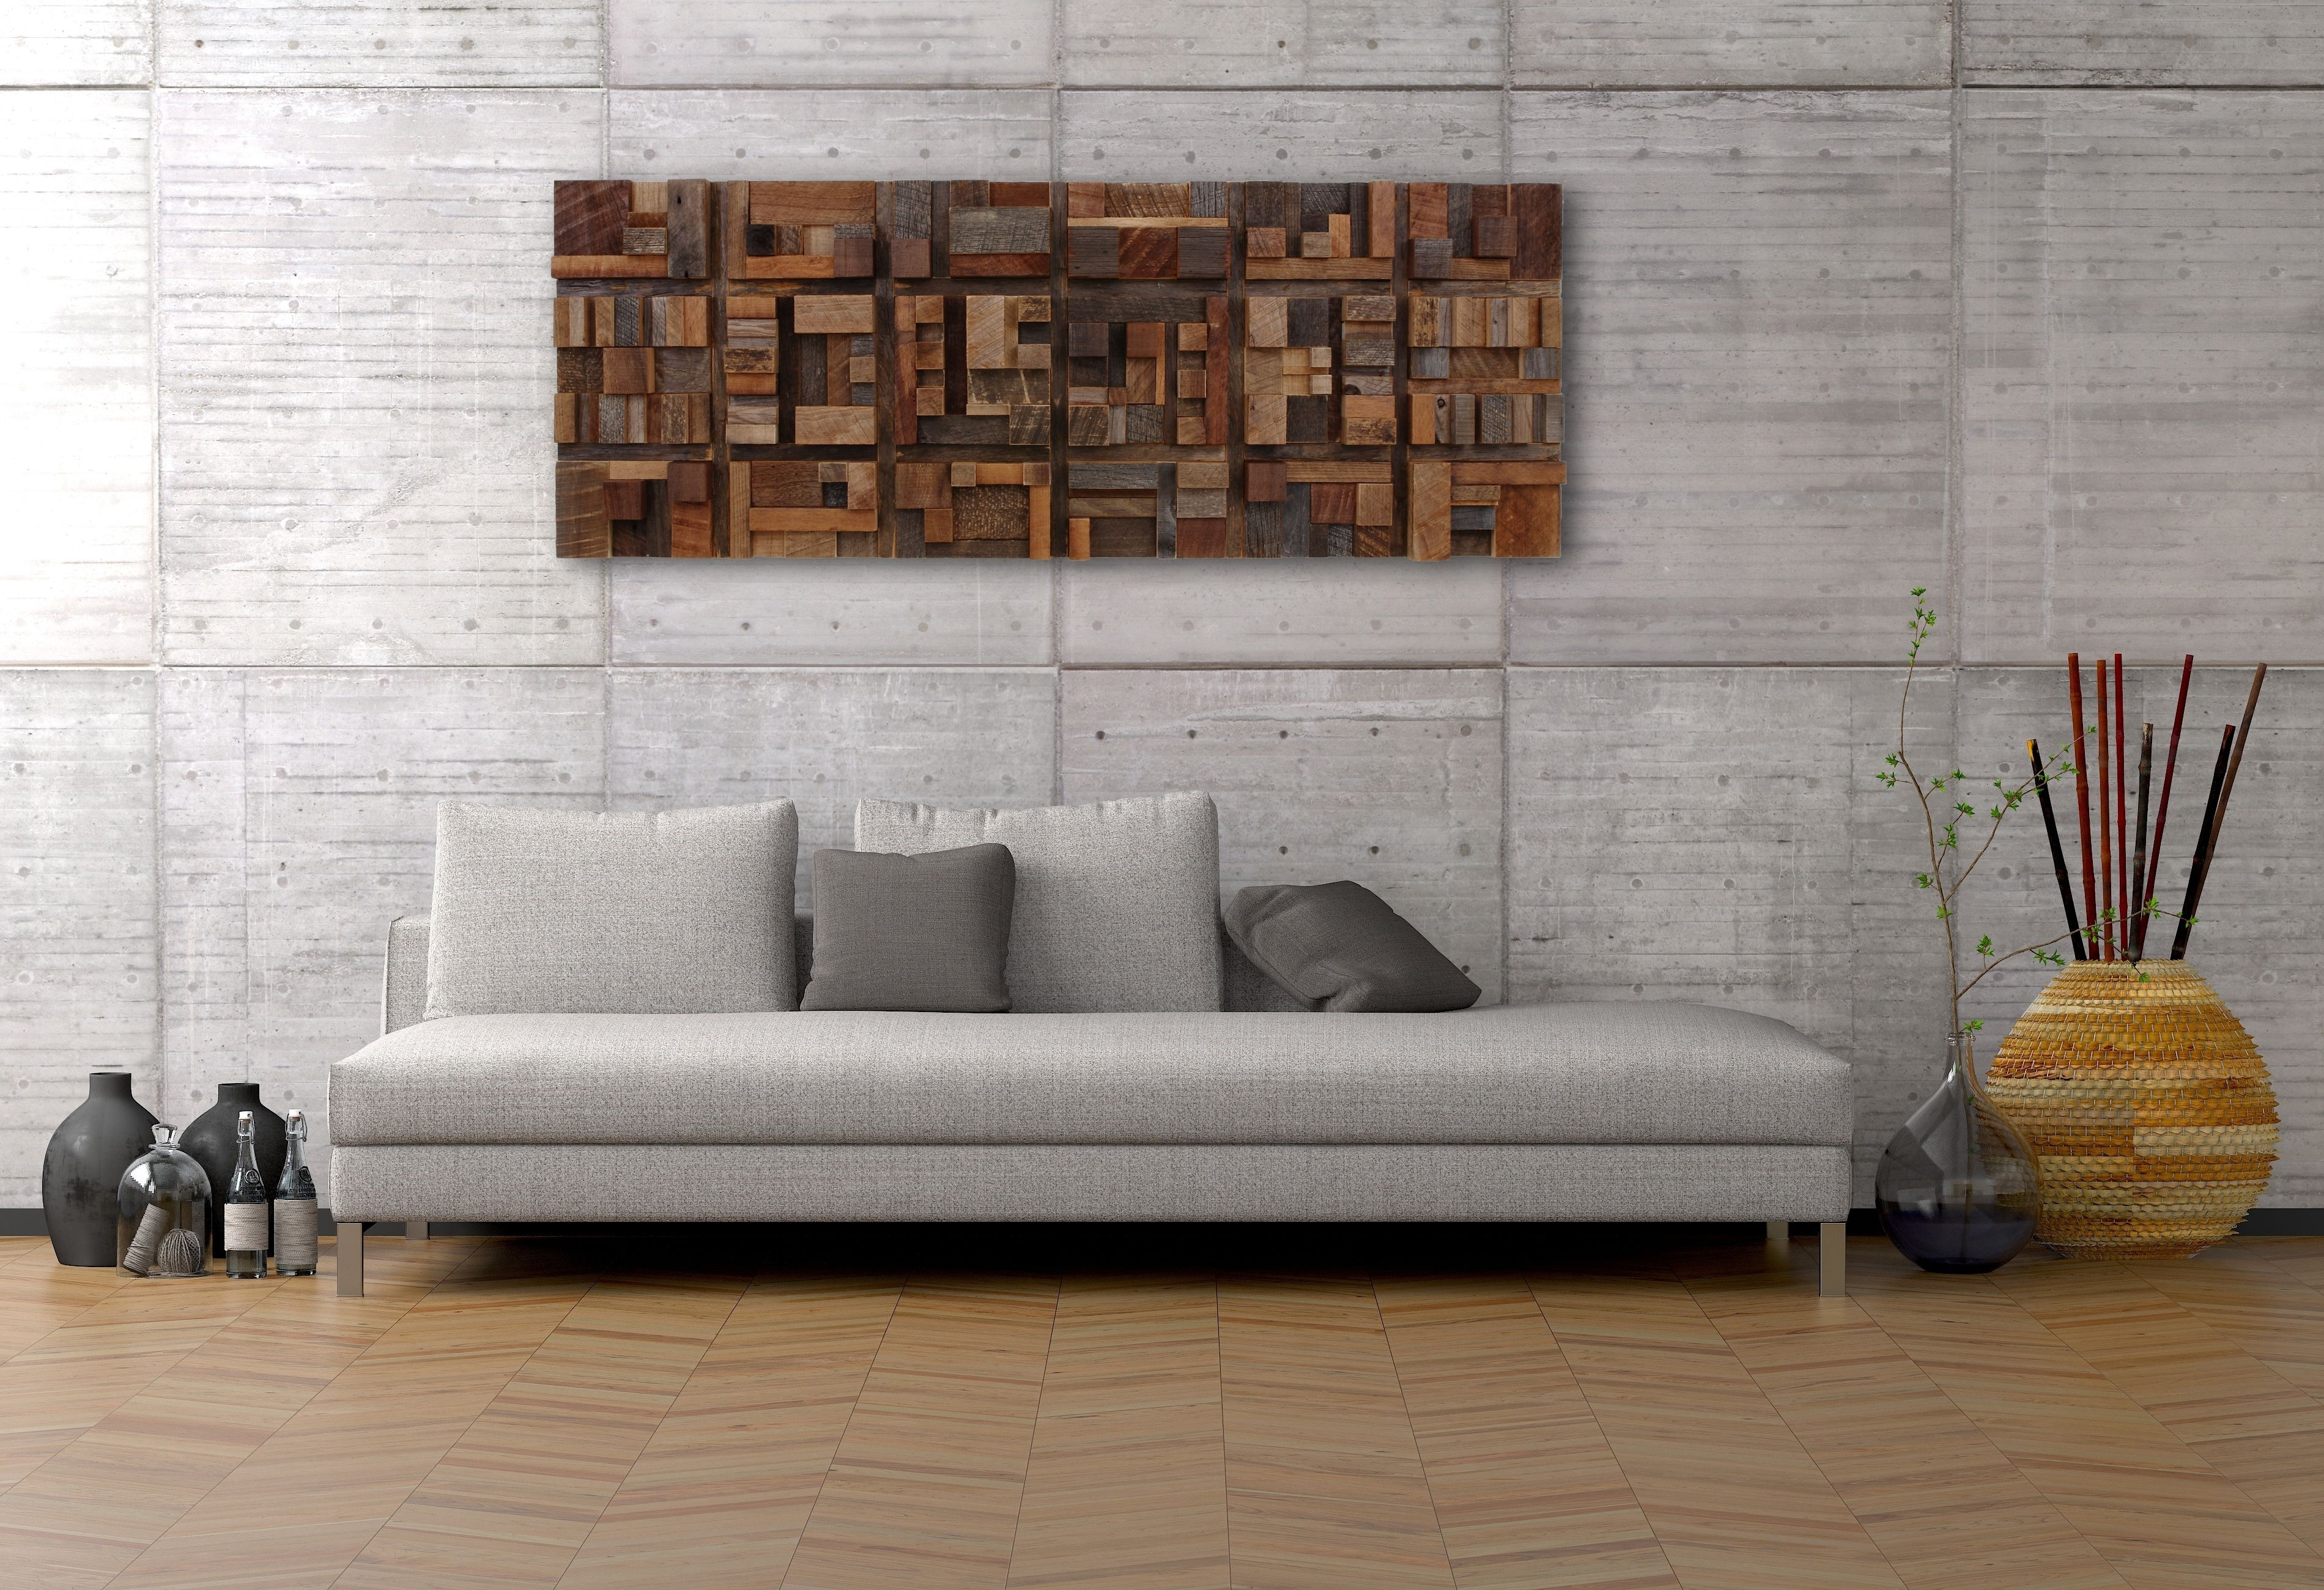 Sofa Size Wall Art With Latest Handmade Wood Wall Art Of Geometric Shapes Reclaimed Barnwood & Explore Photos of Sofa Size Wall Art (Showing 6 of 15 Photos)